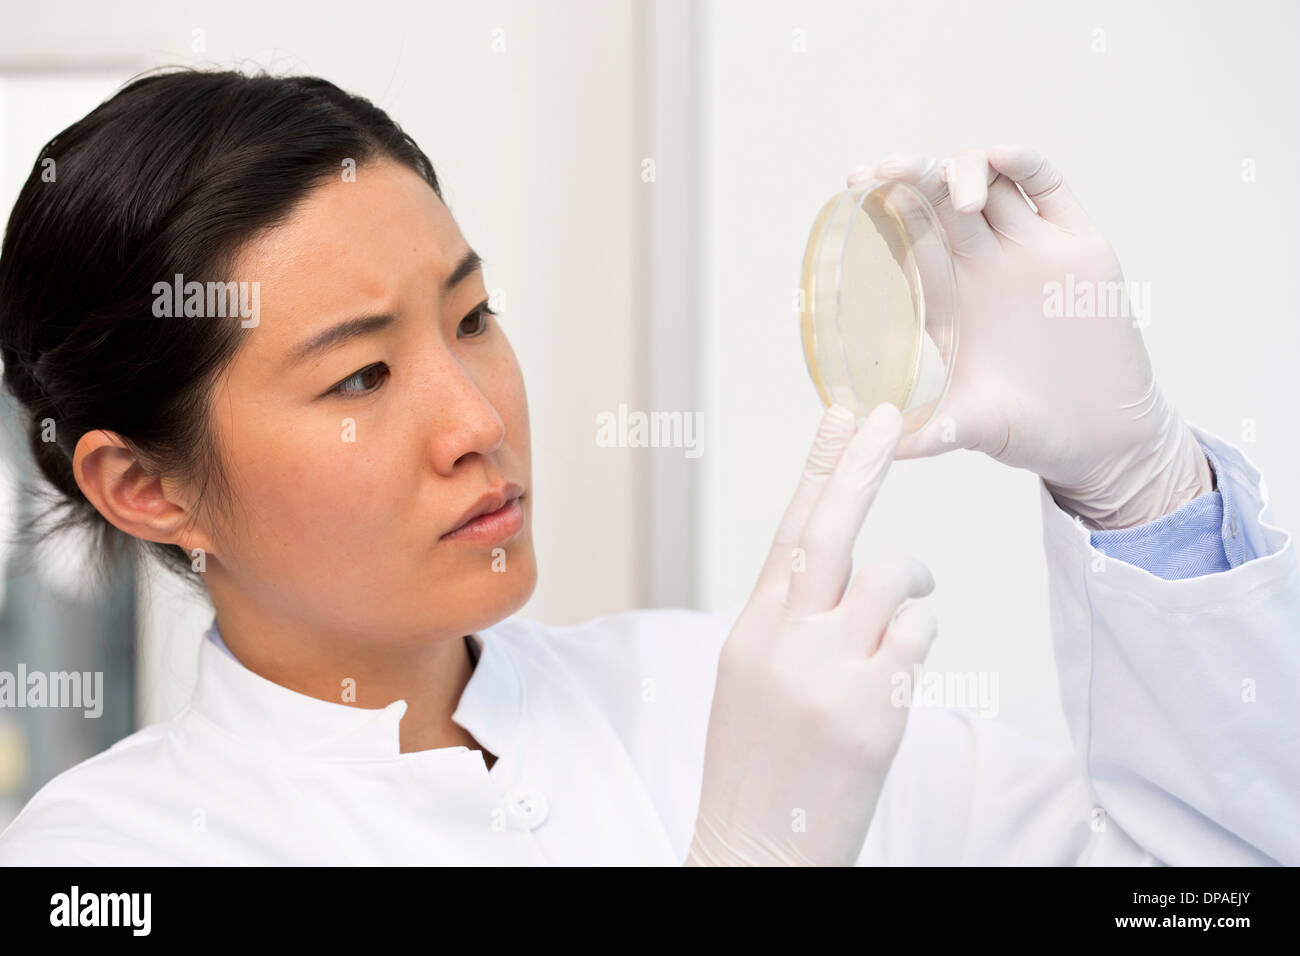 Female scientist examining bacterial growth/plaques in petri dish - Stock Image